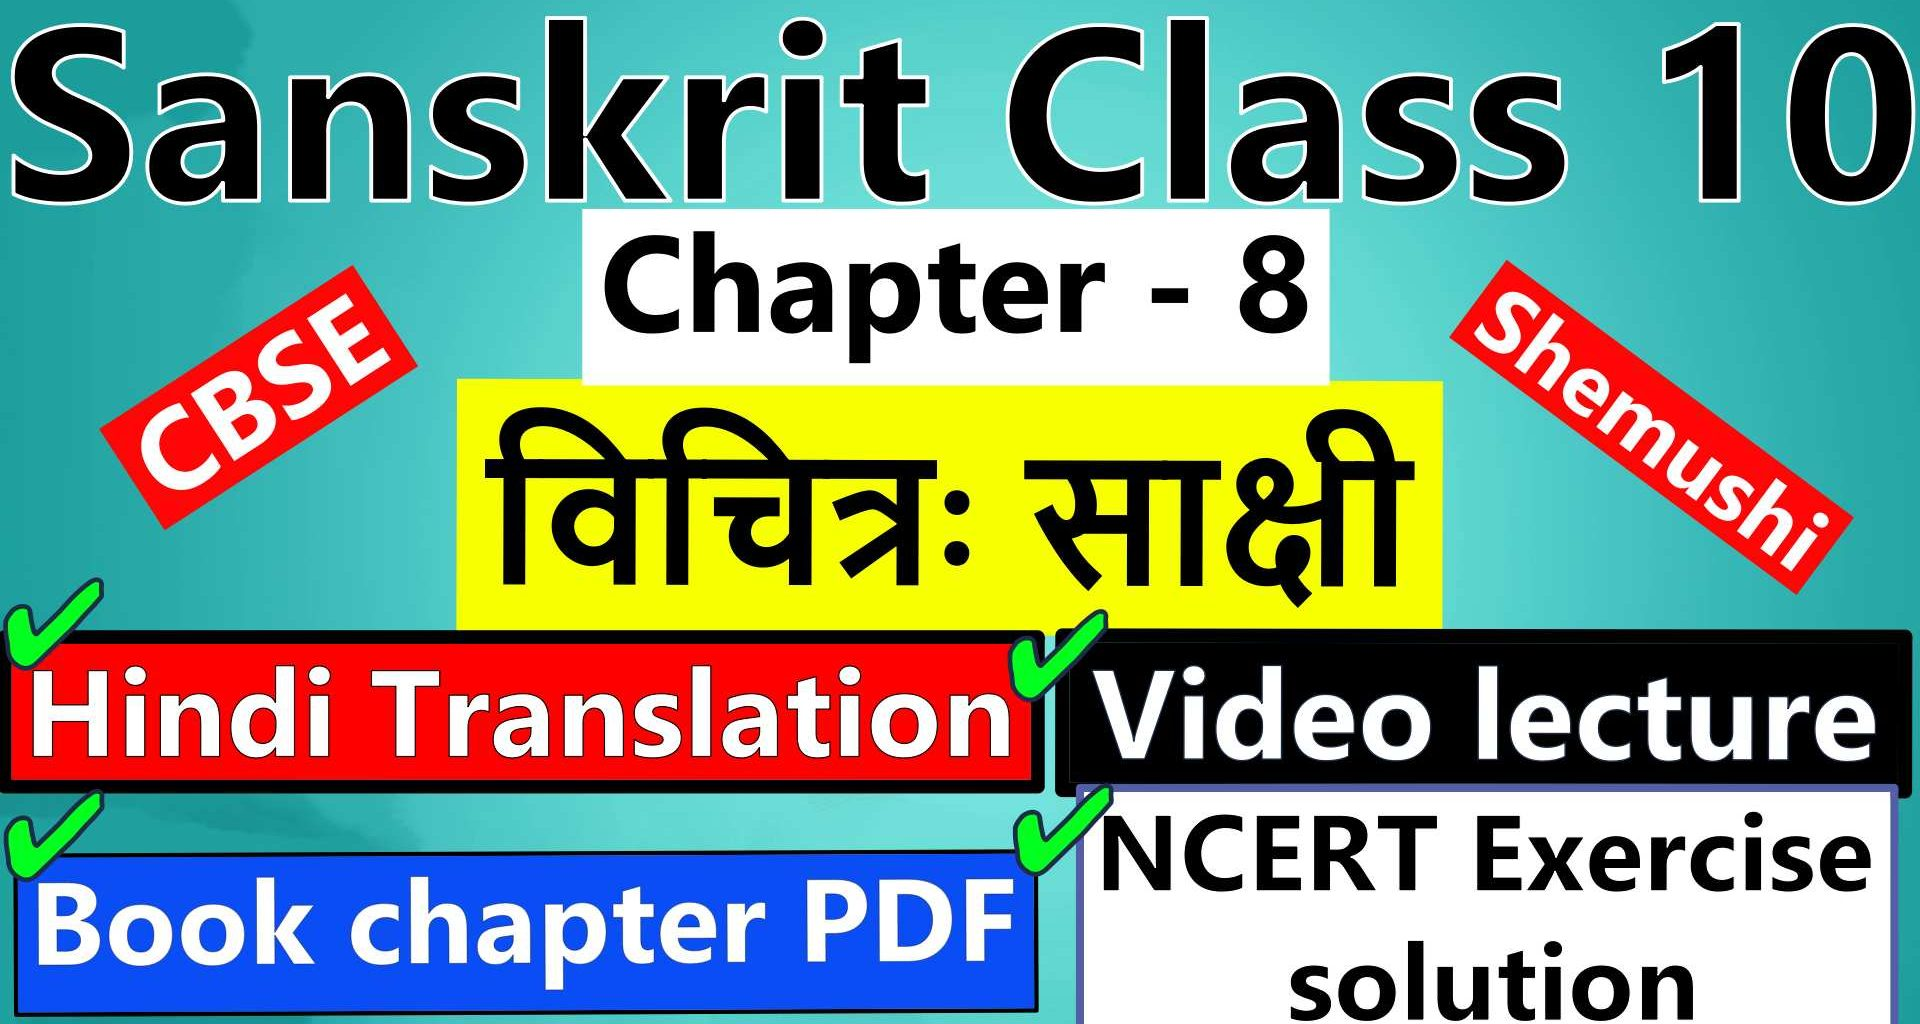 sanskrit-class-10-chapter-8-विचित्रः-साक्षी-Hindi-Translation-Video-lecture-NCERT-Exercise-Solution-Question-Answer-Book-chapter-PDF